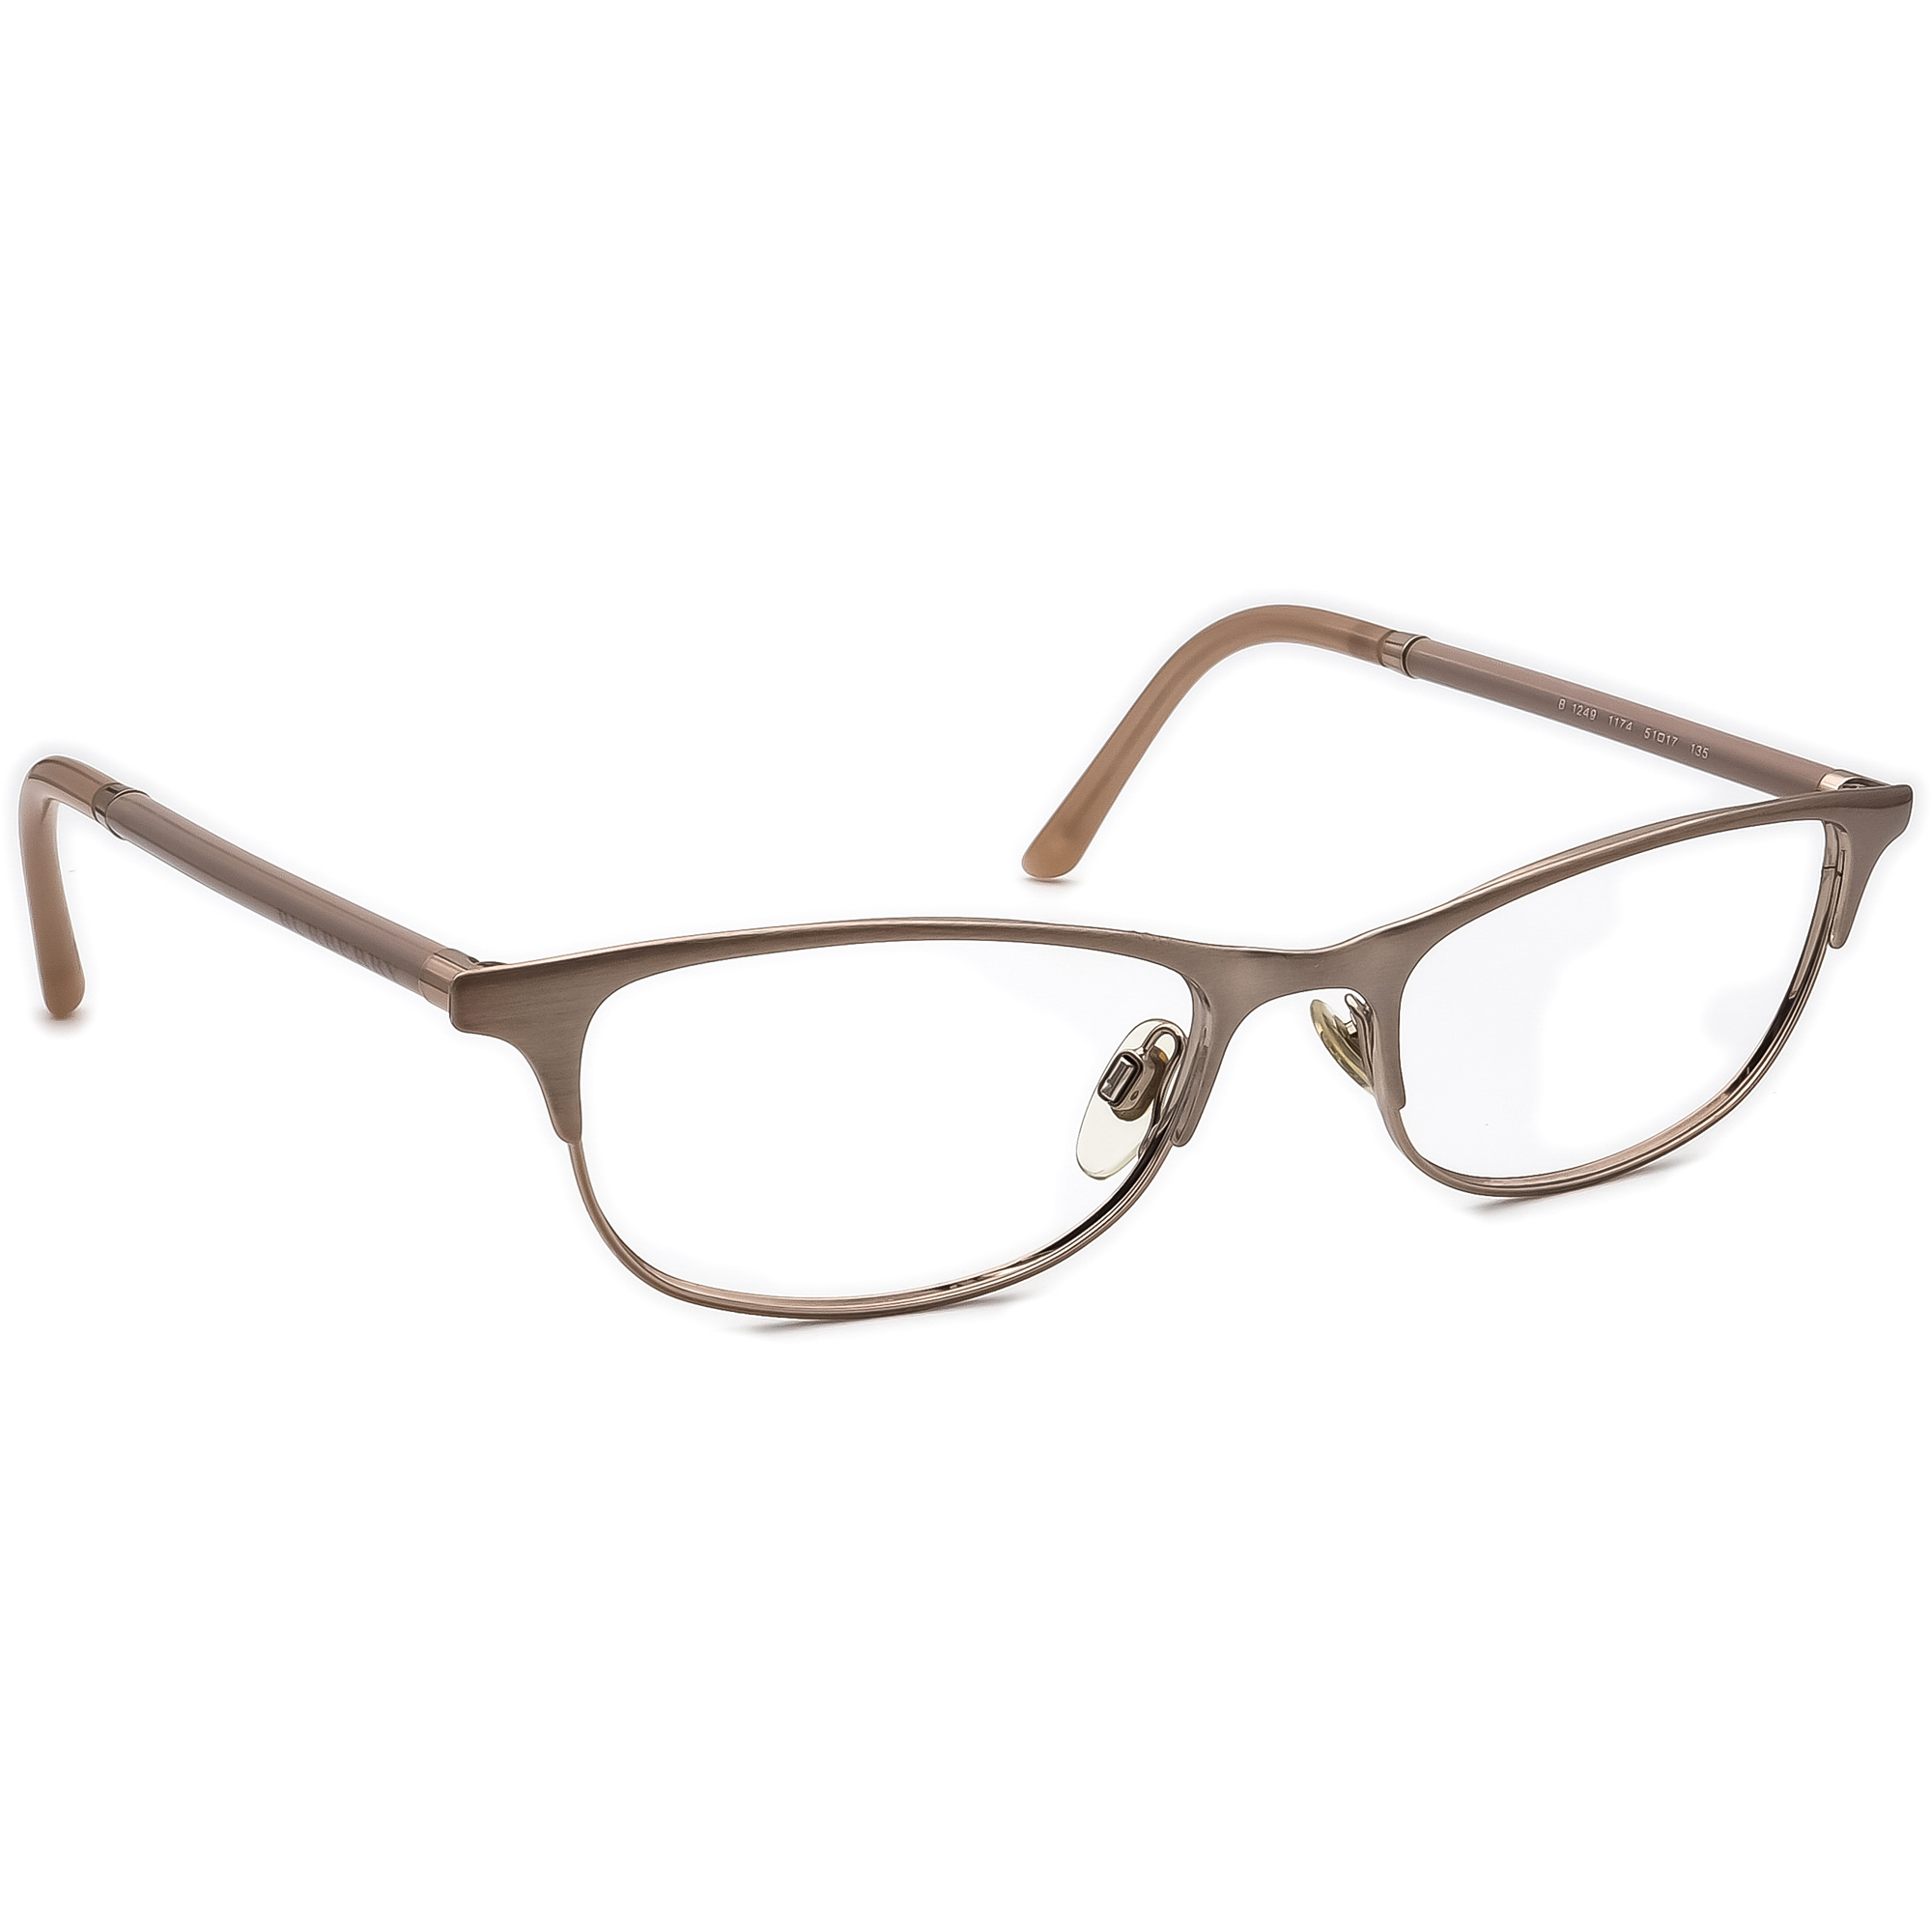 Burberry B 1249 1174 Eyeglasses